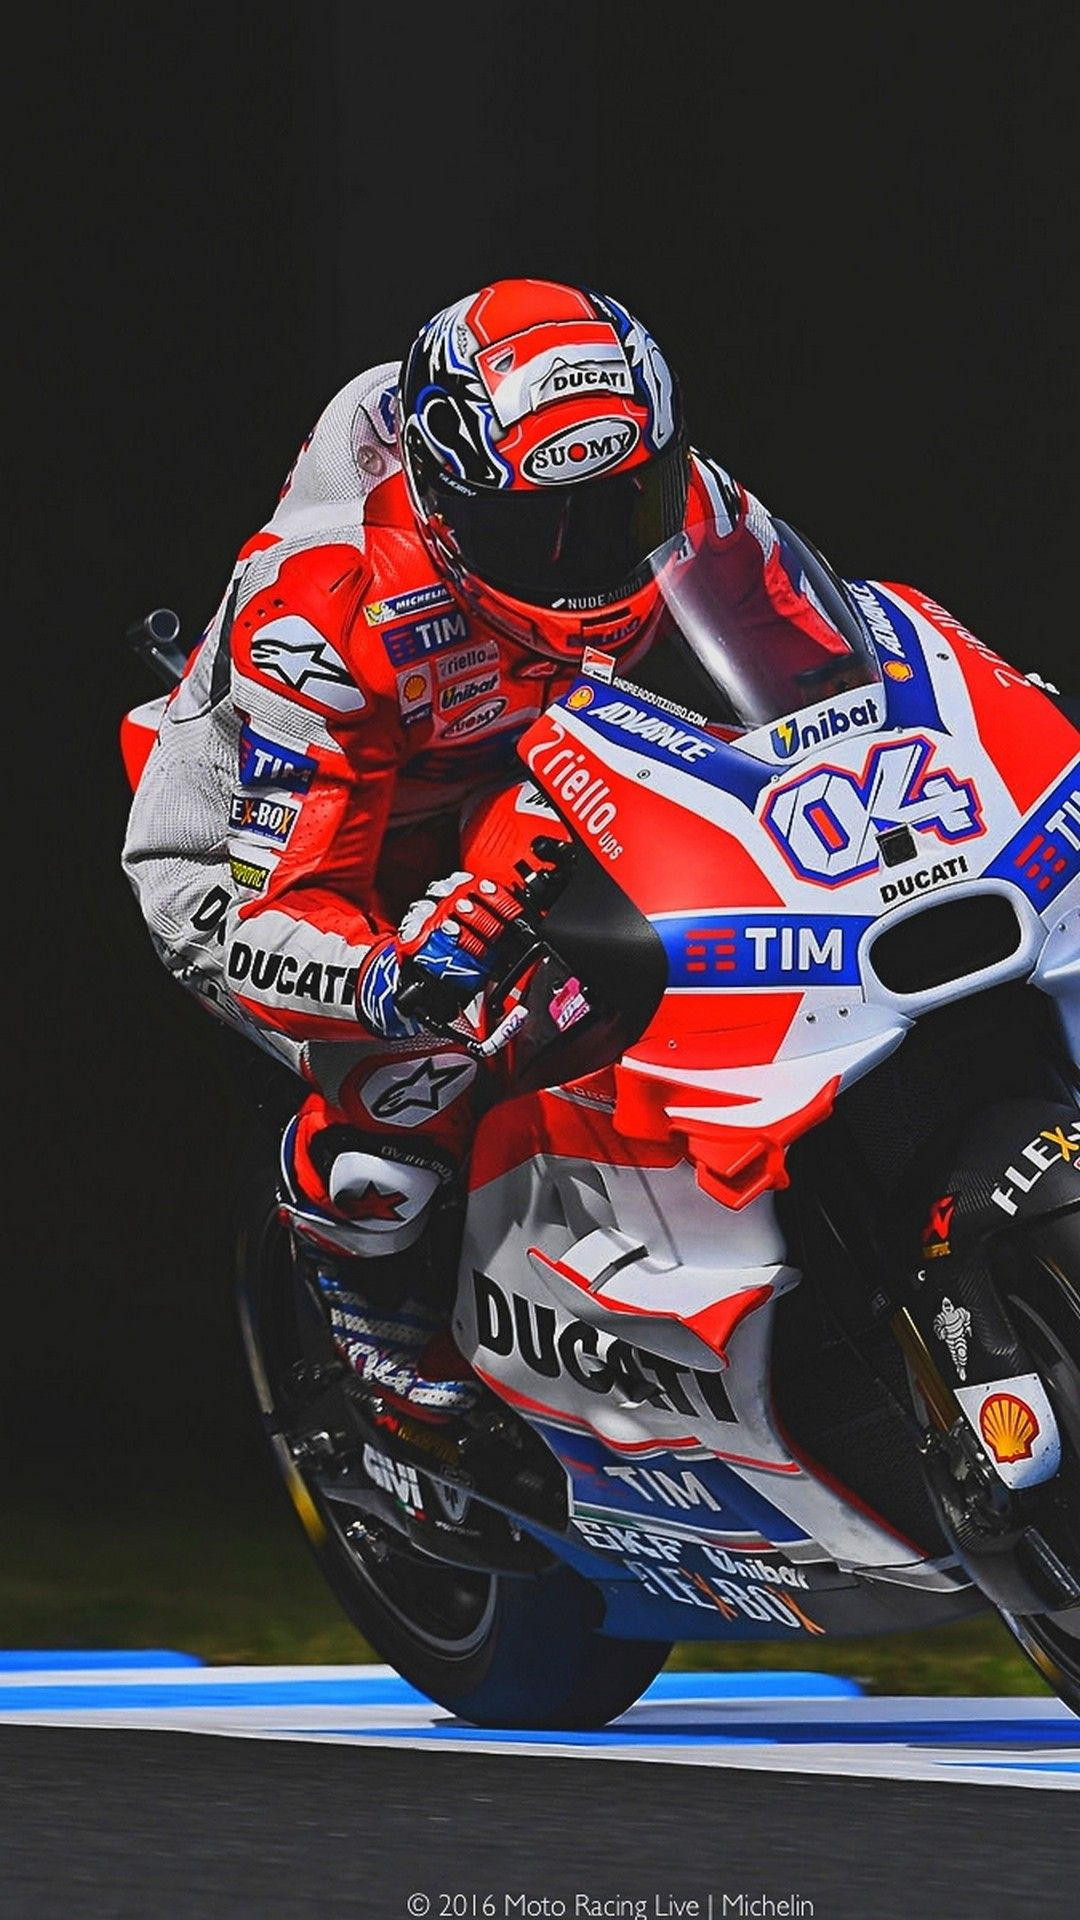 Motogp Andrea Dovizioso Wallpaper For iPhone iPhoneWallpapers 1080x1920